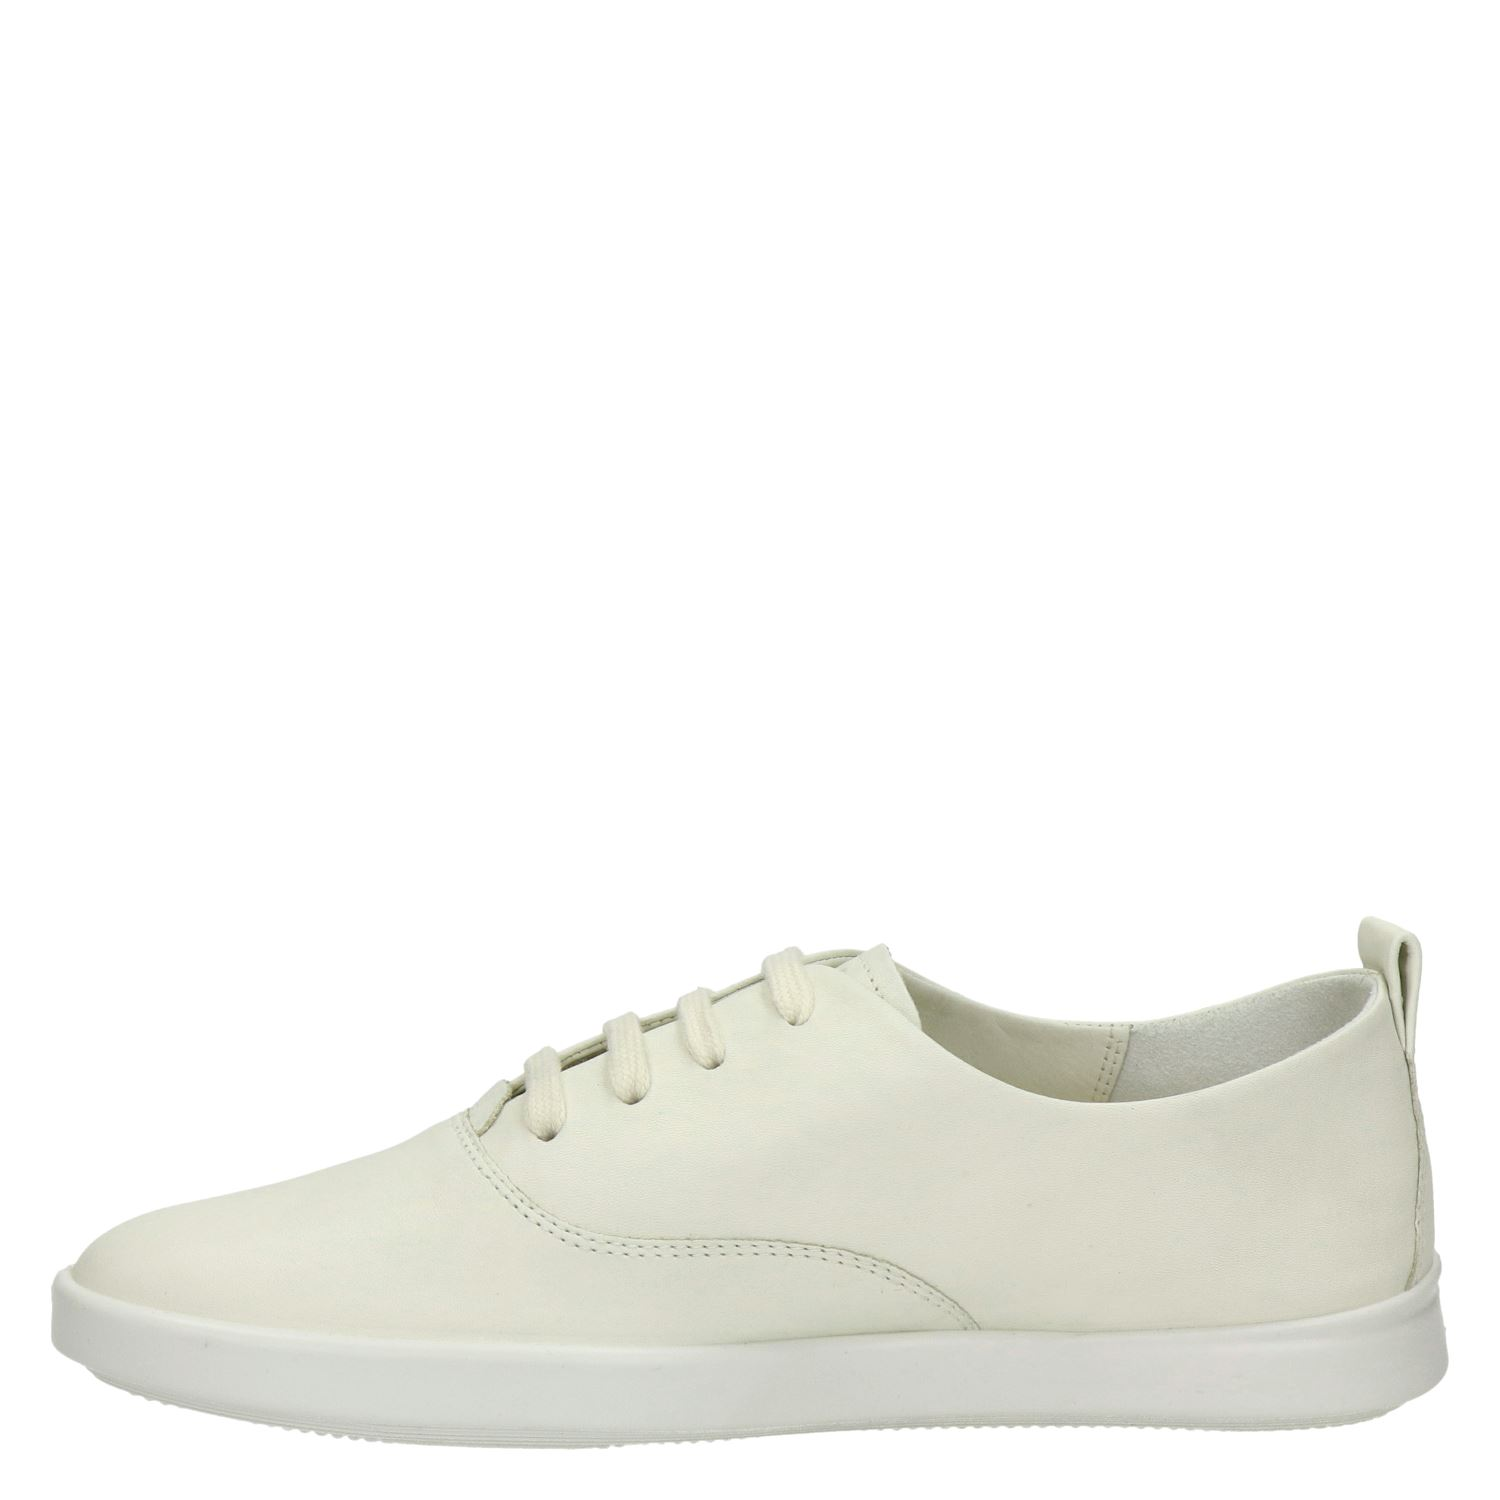 Ecco Leisure - Lage sneakers voor dames - Wit FGMigyj